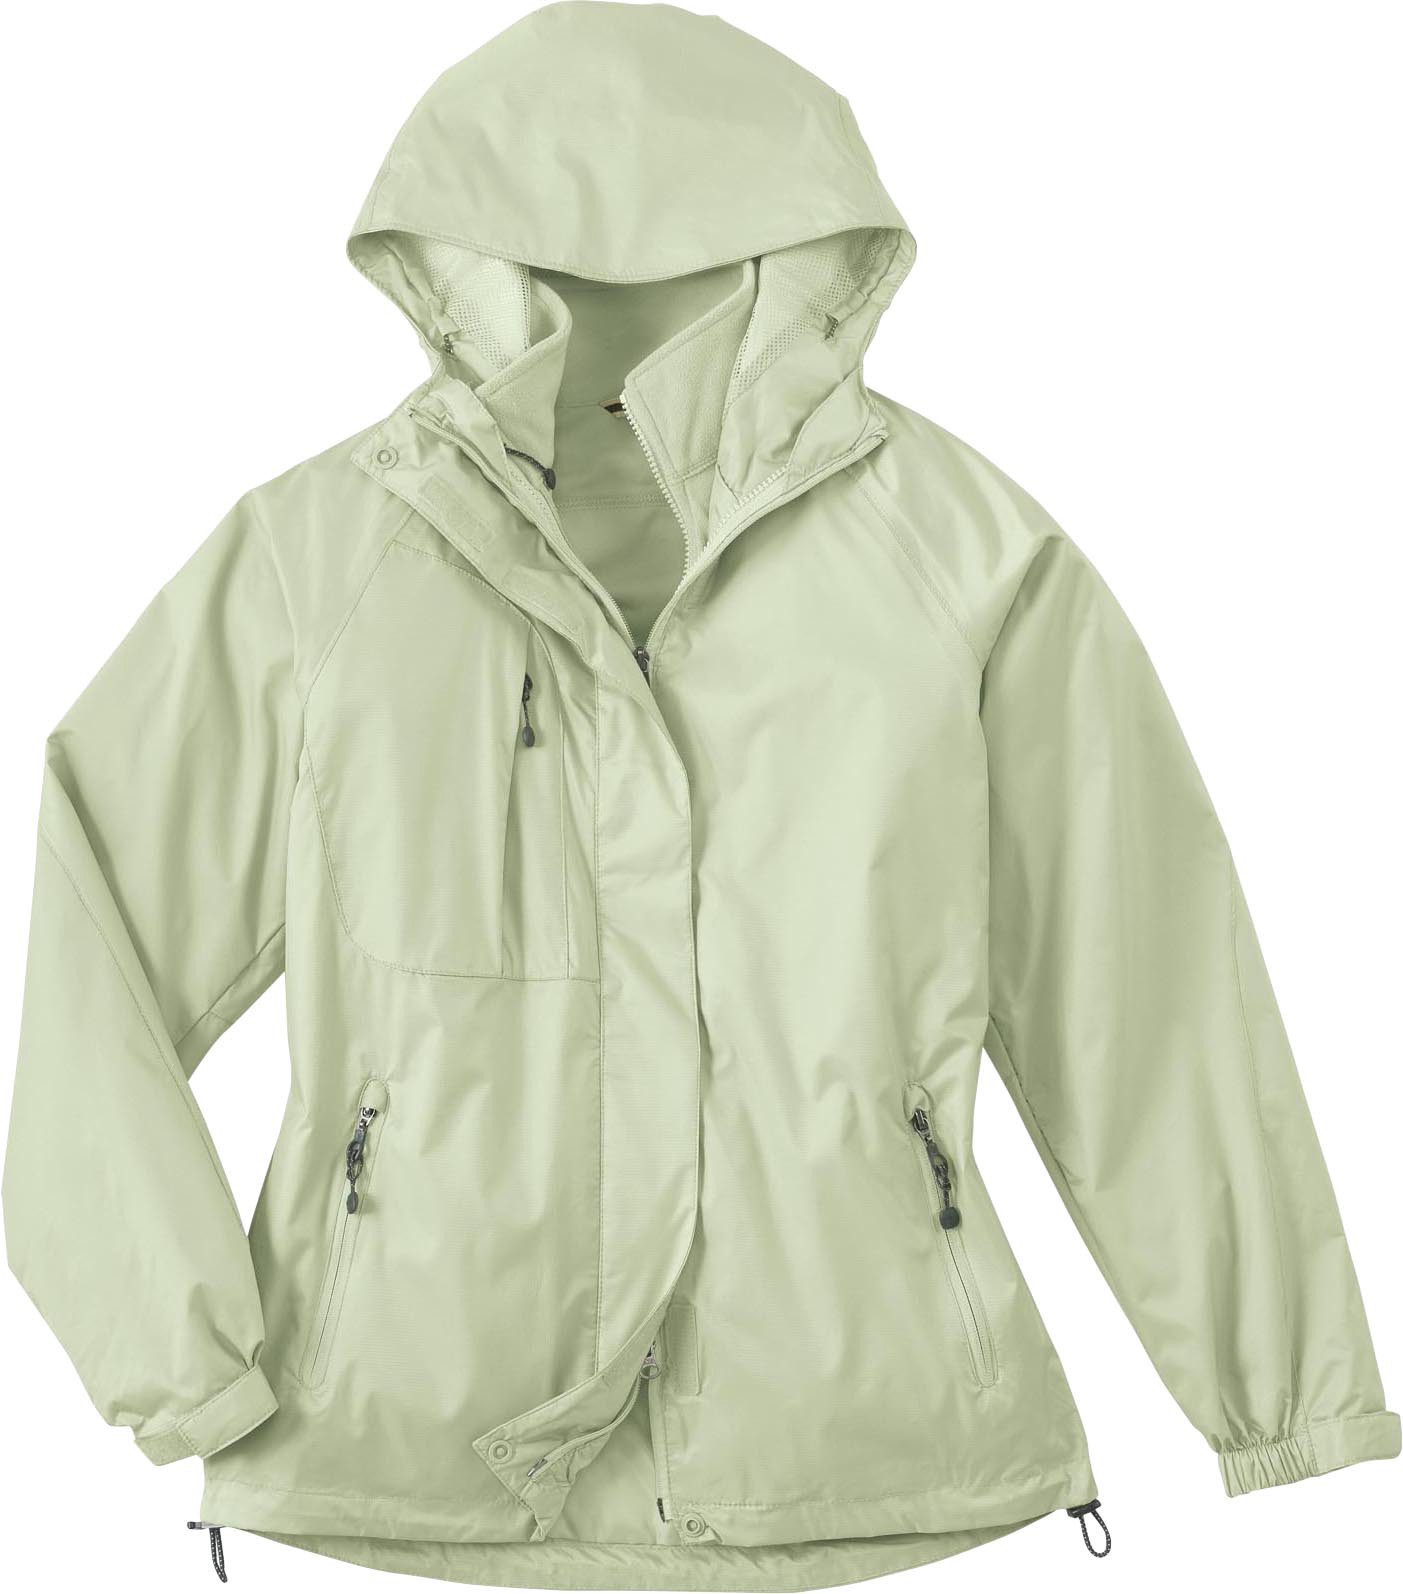 Ash City Performance Jackets 78046 - Ladies' 3-In-1 ...